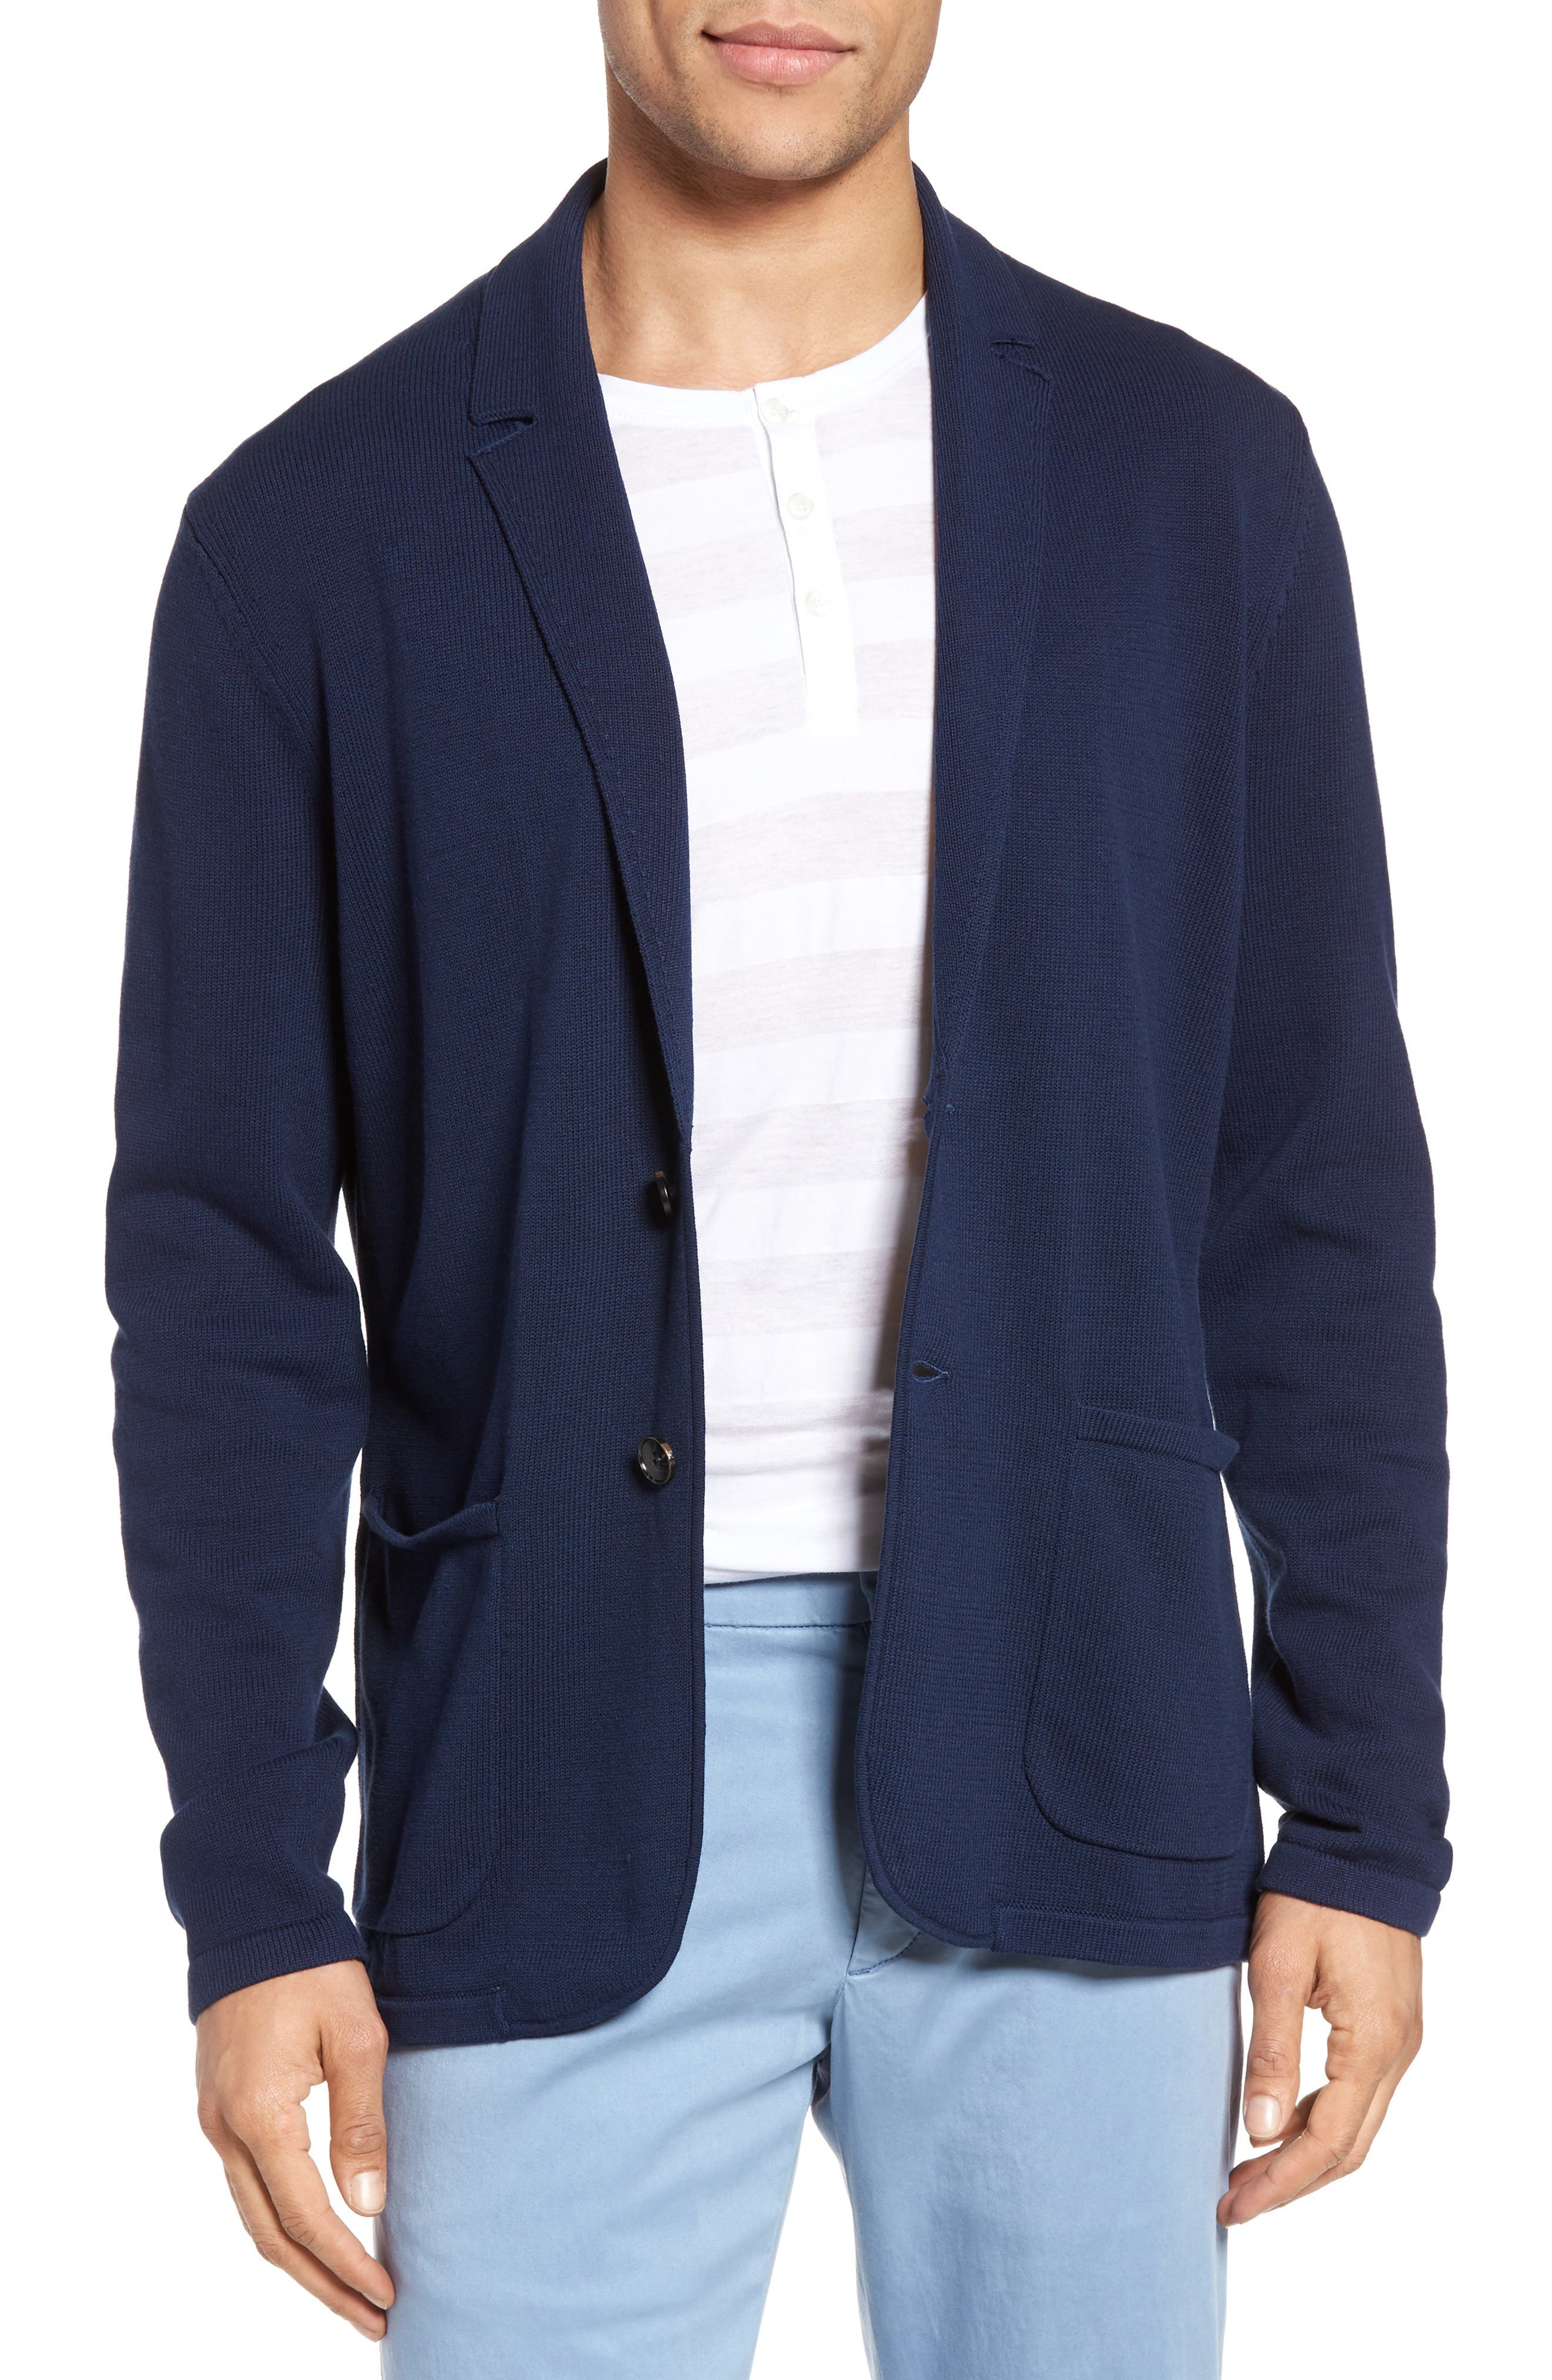 Alternate Image 1 Selected - Zachary Prell Alipinia Notch Collar Cardigan